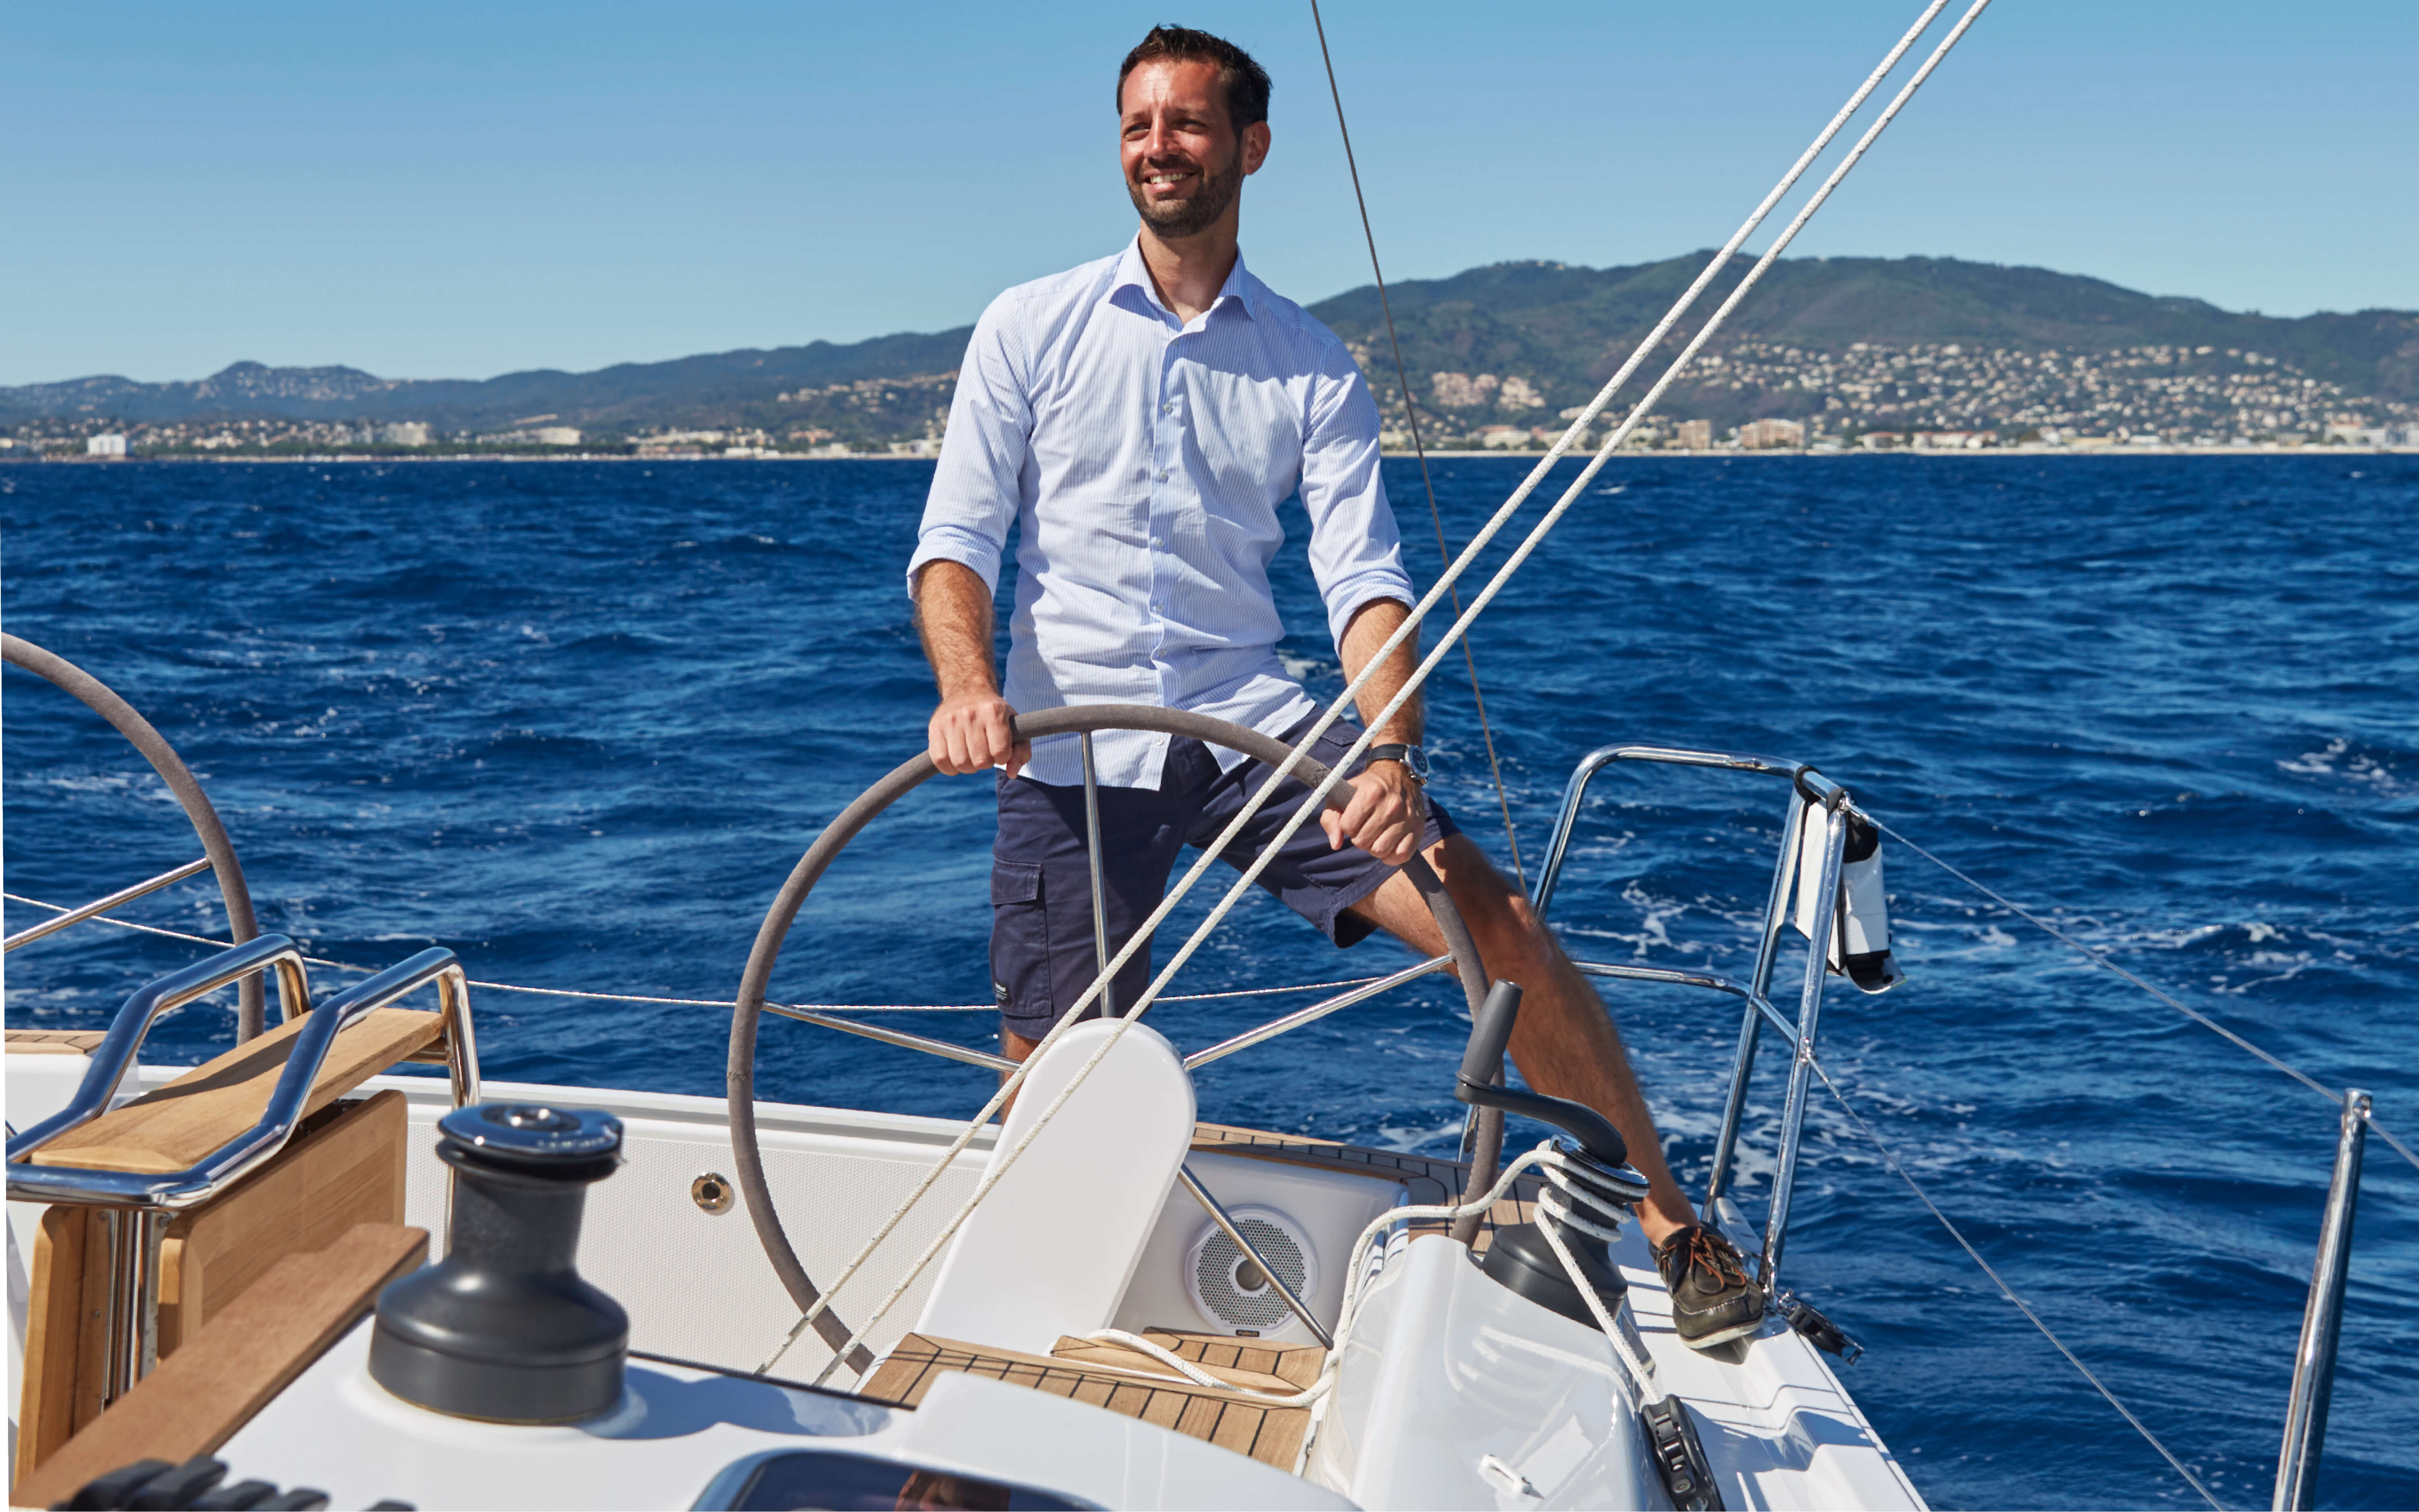 Hanse 315 Exterior Sailing | HANSE yachts amaze with their modern, functional design. Unique, puristic elegance meets exceptional performance from the pen of judel/vrolijk & co, the world's best and most experienced yacht designers. | Hanse